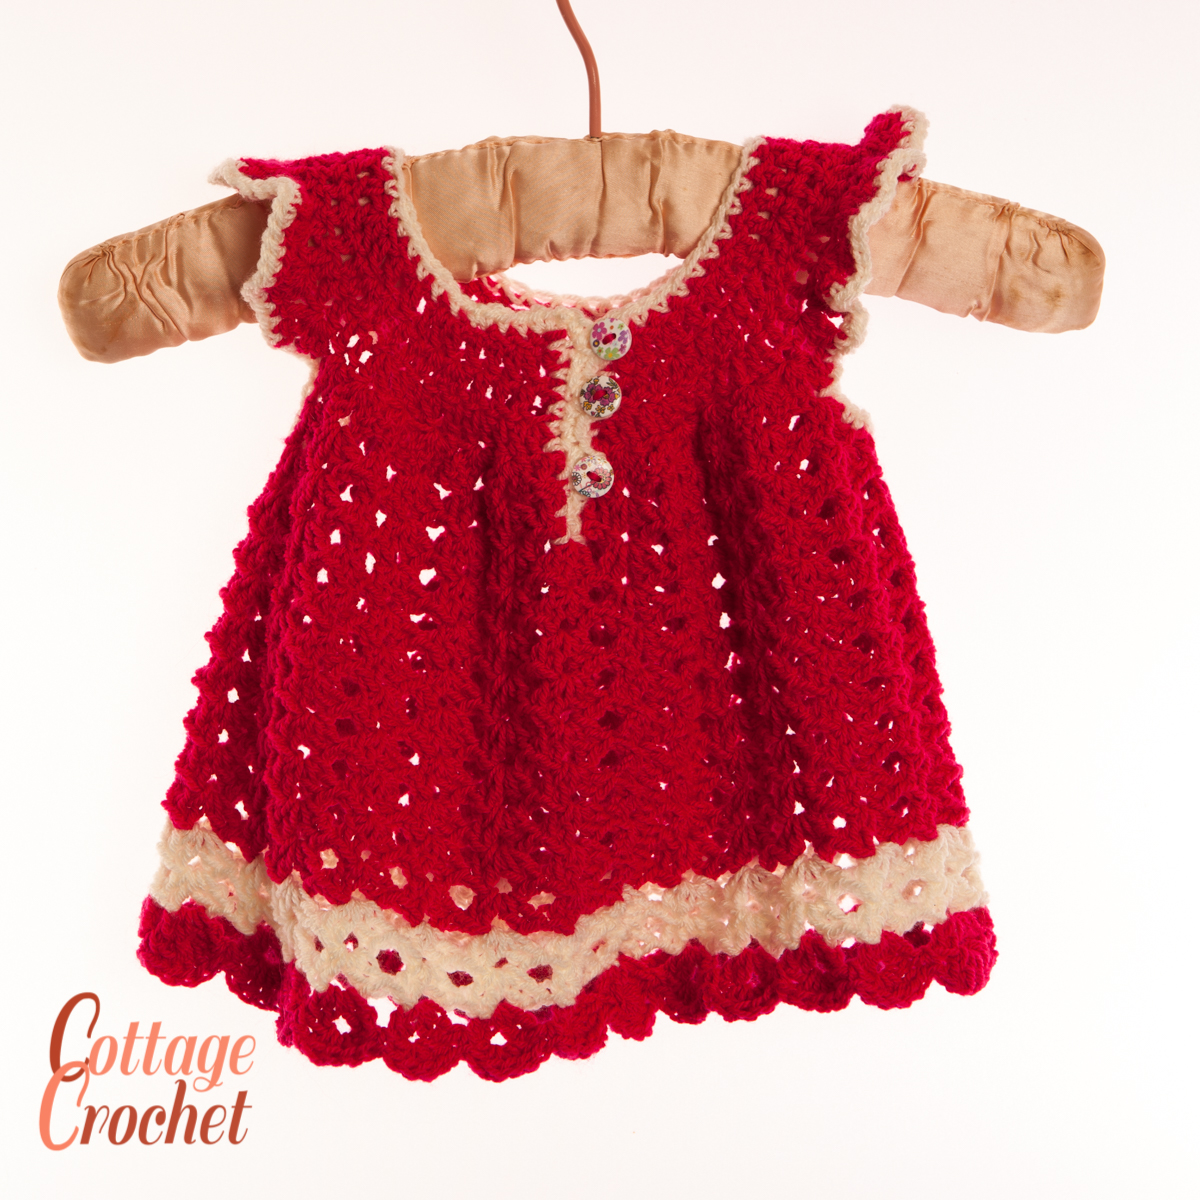 Newborn Christmas Dresses 0 3 Months.Red Christmas Baby Dress Newborn 0 3 Months Red And